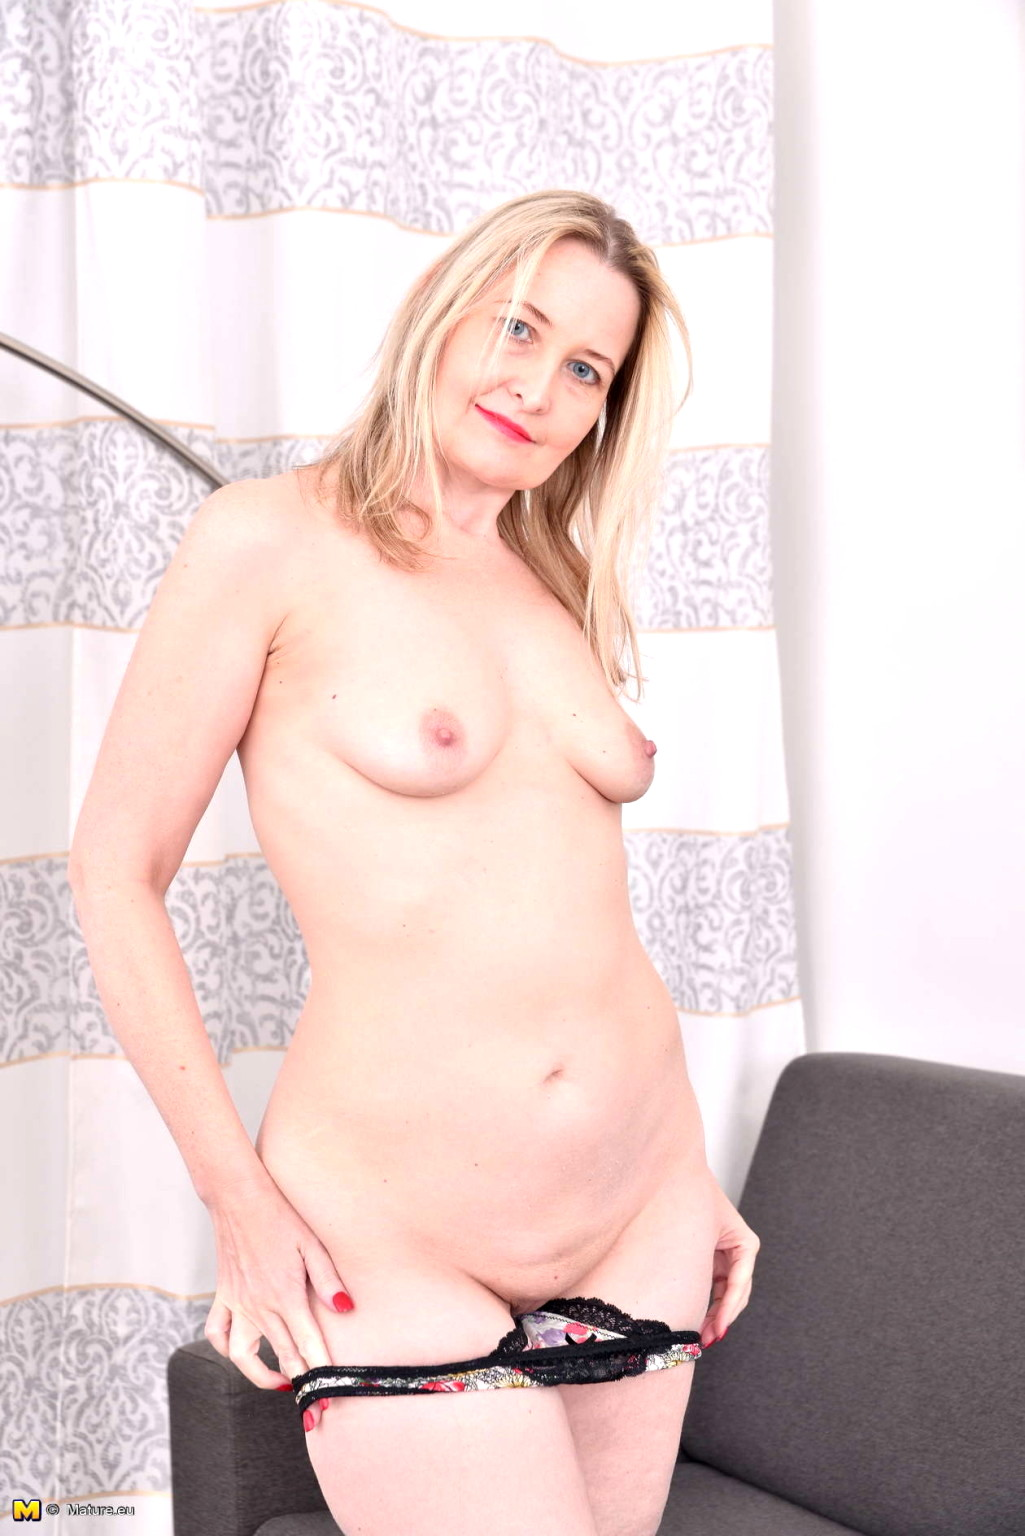 Babe Today Mature Nl Emma Turner Daily Mature Asstronic -1197